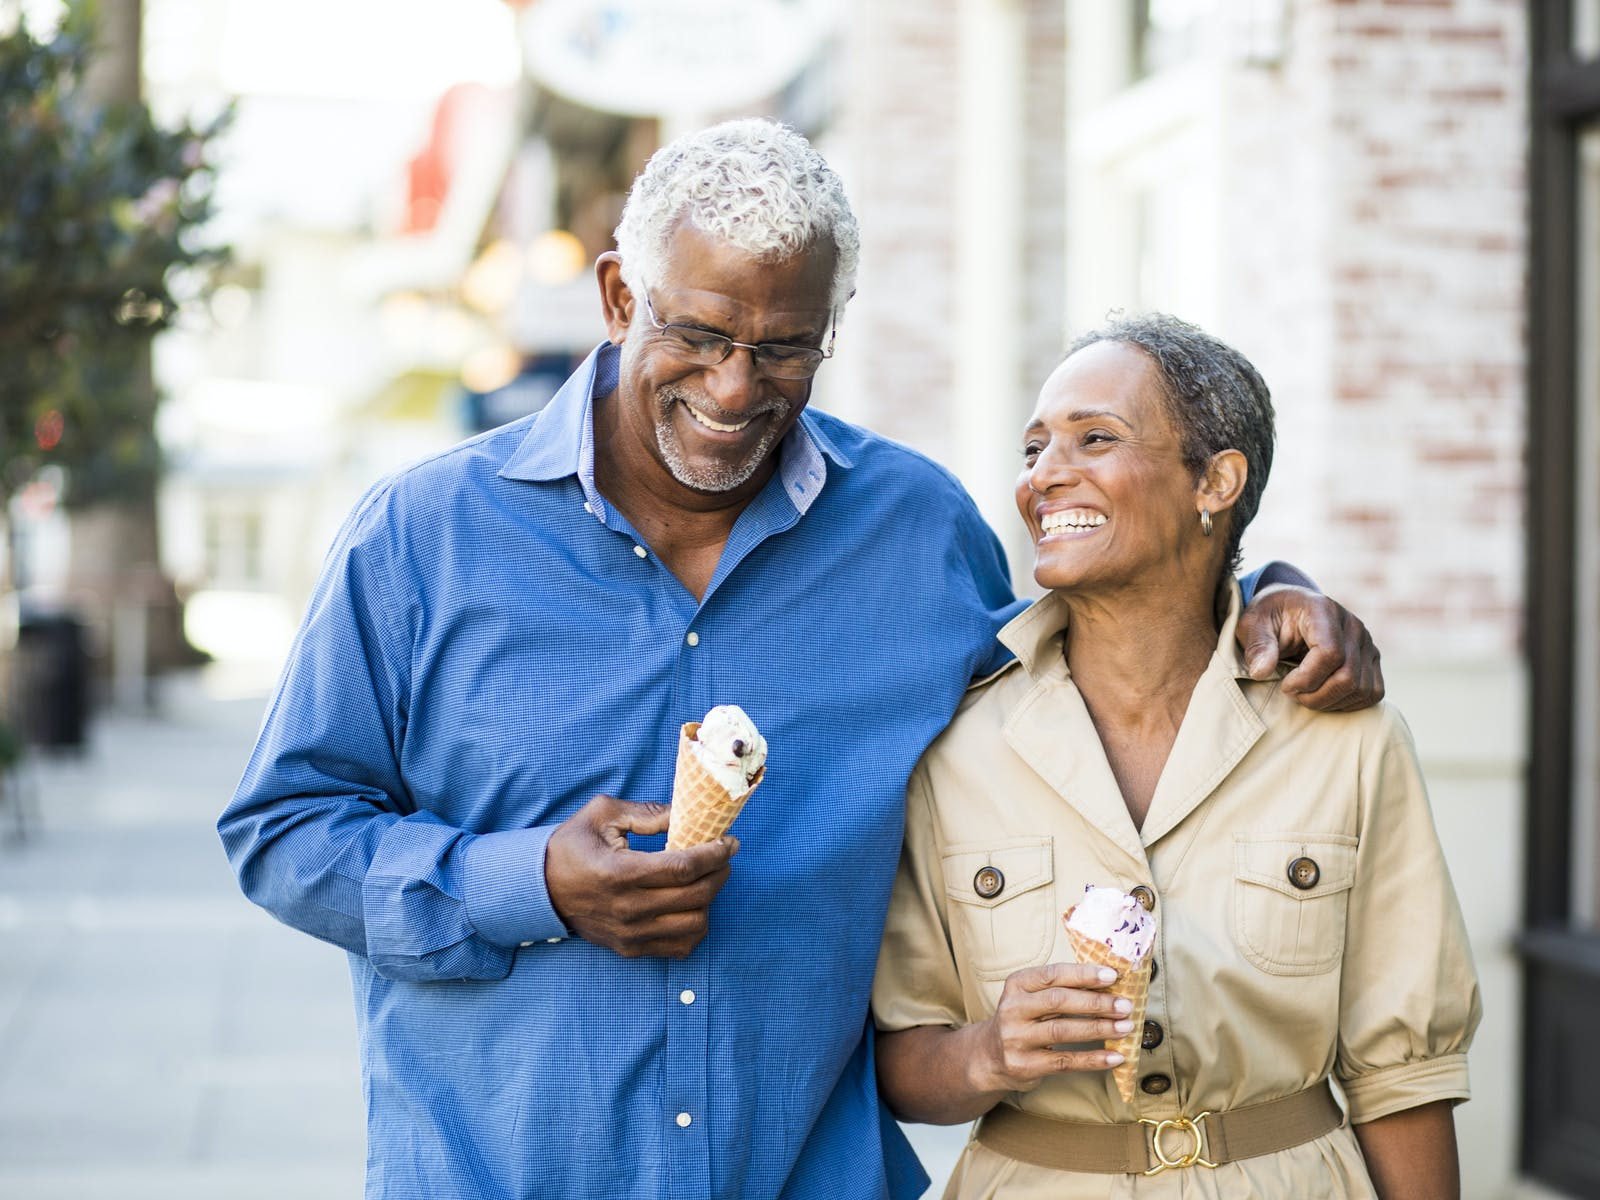 An older couple enjoying ice cream